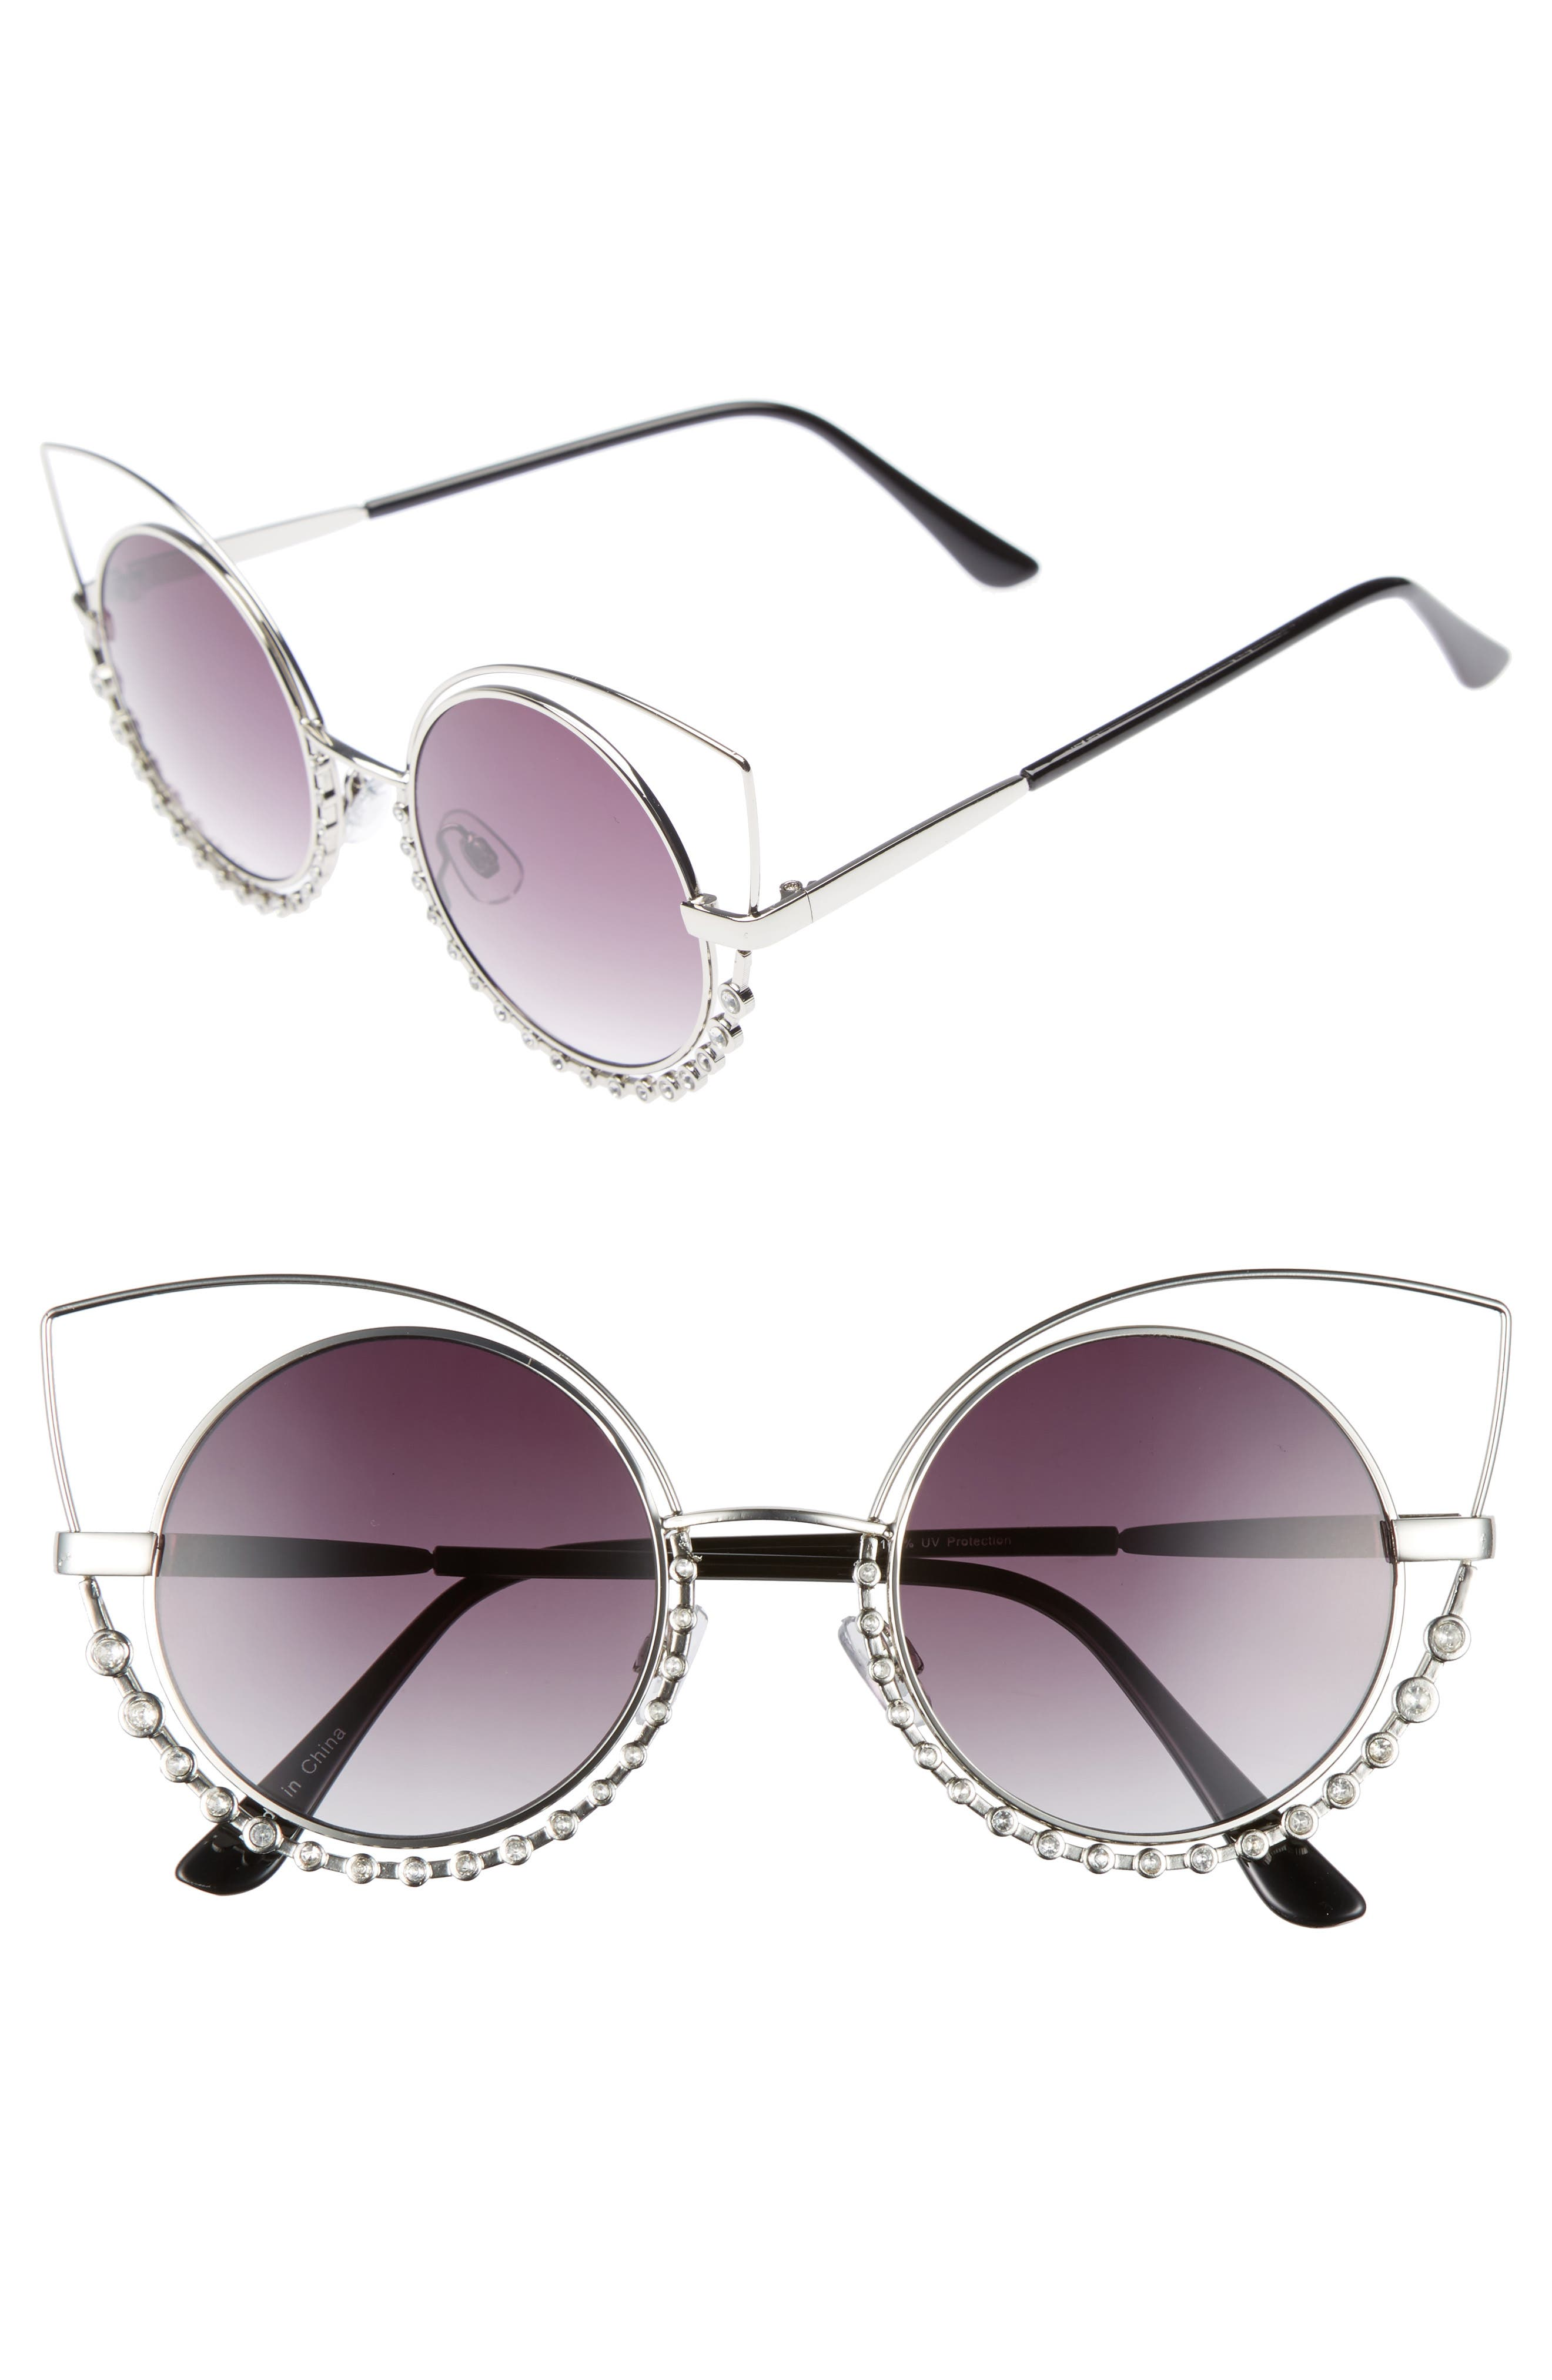 55mm Studded Round Sunglasses,                             Main thumbnail 1, color,                             Silver